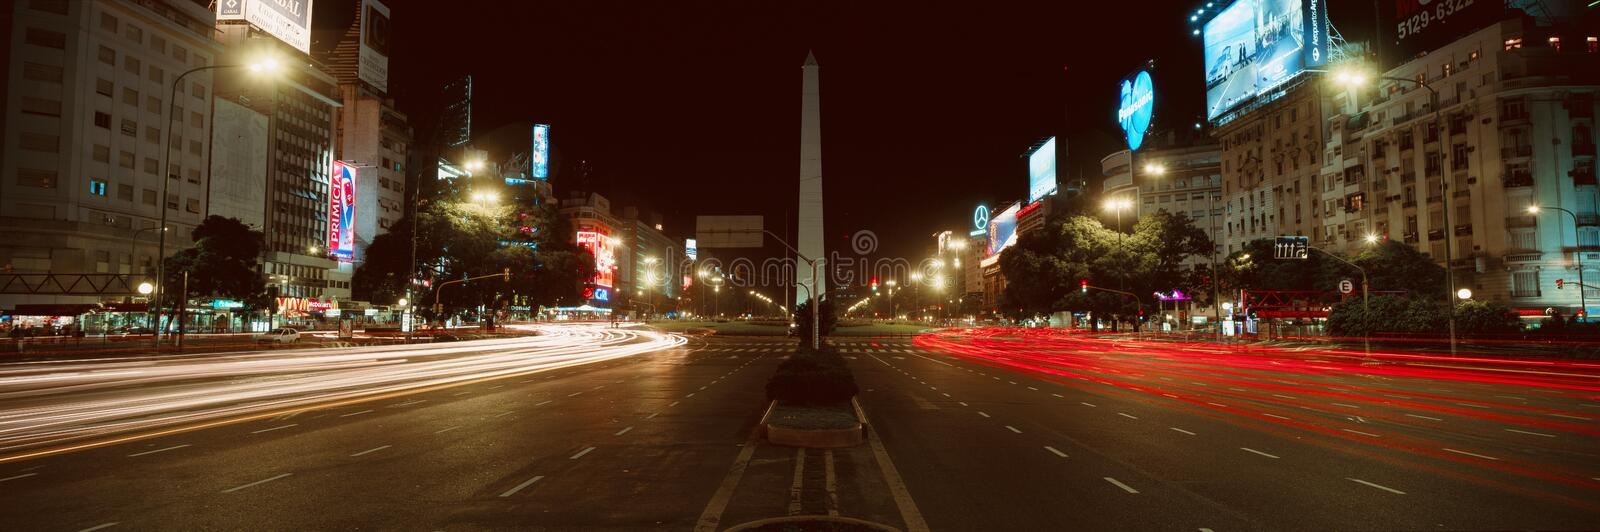 Panoramic view at night of Avenida 9 de Julio, widest avenue in the world, and El Obelisco, The Obelisk, Buenos Aires, Argentina royalty free stock image